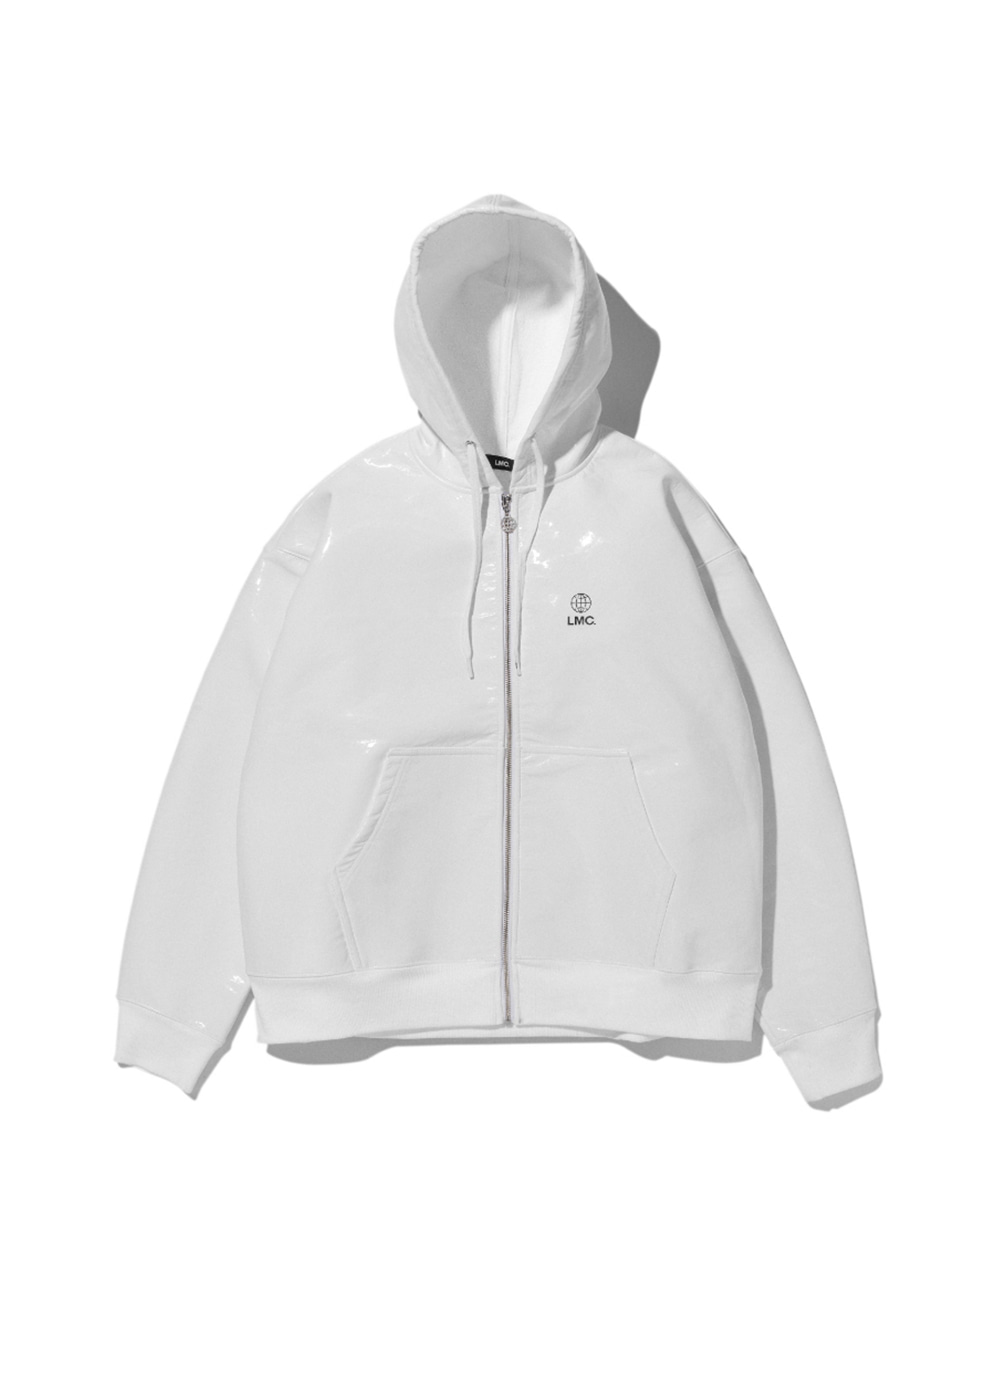 LMC PVC SWEAT ZIP-UP HOODIE white